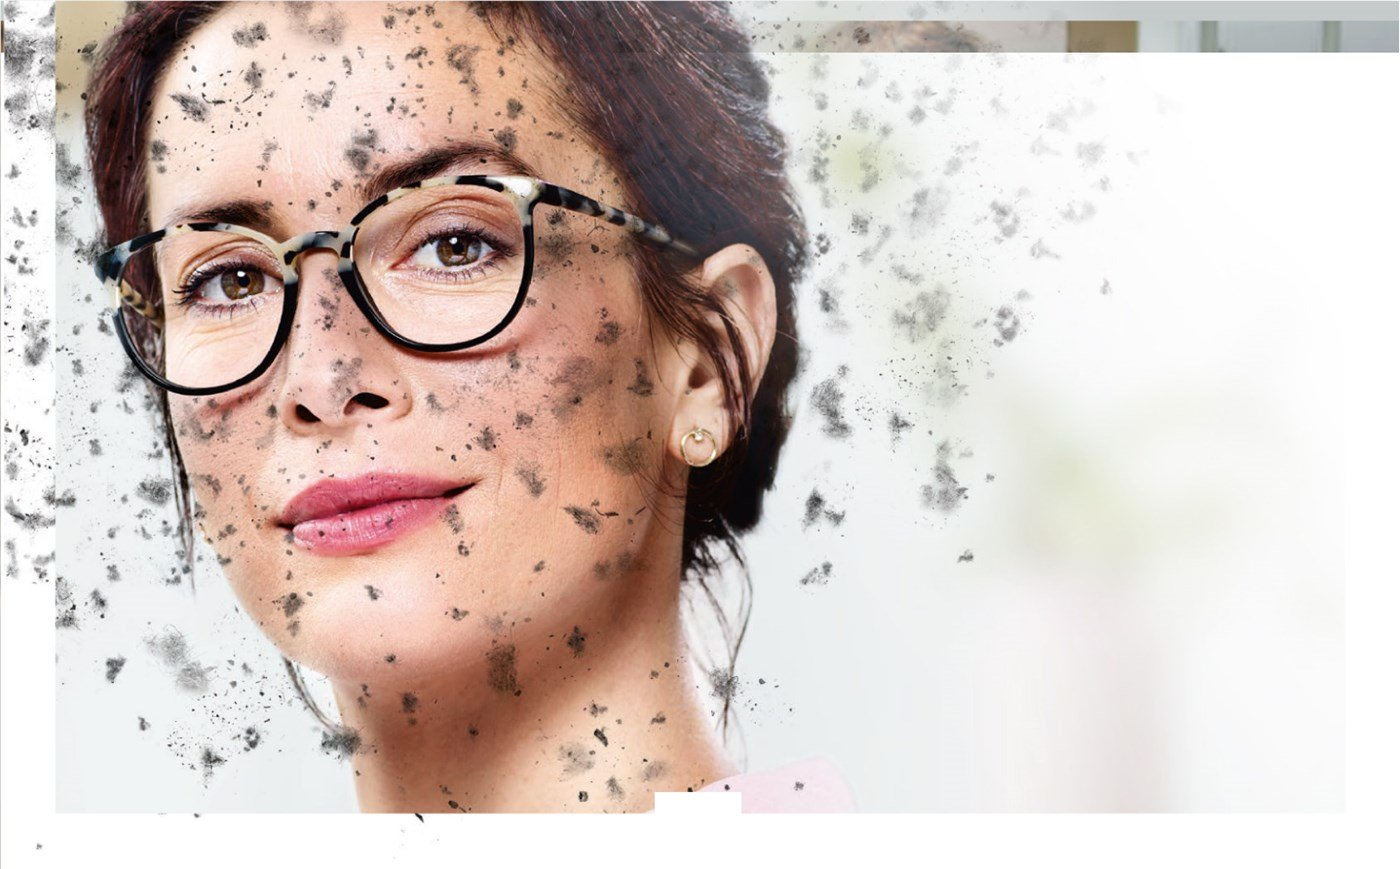 Woman wearing eyeglasses with Hoya Vision lenses behind a dirty screen